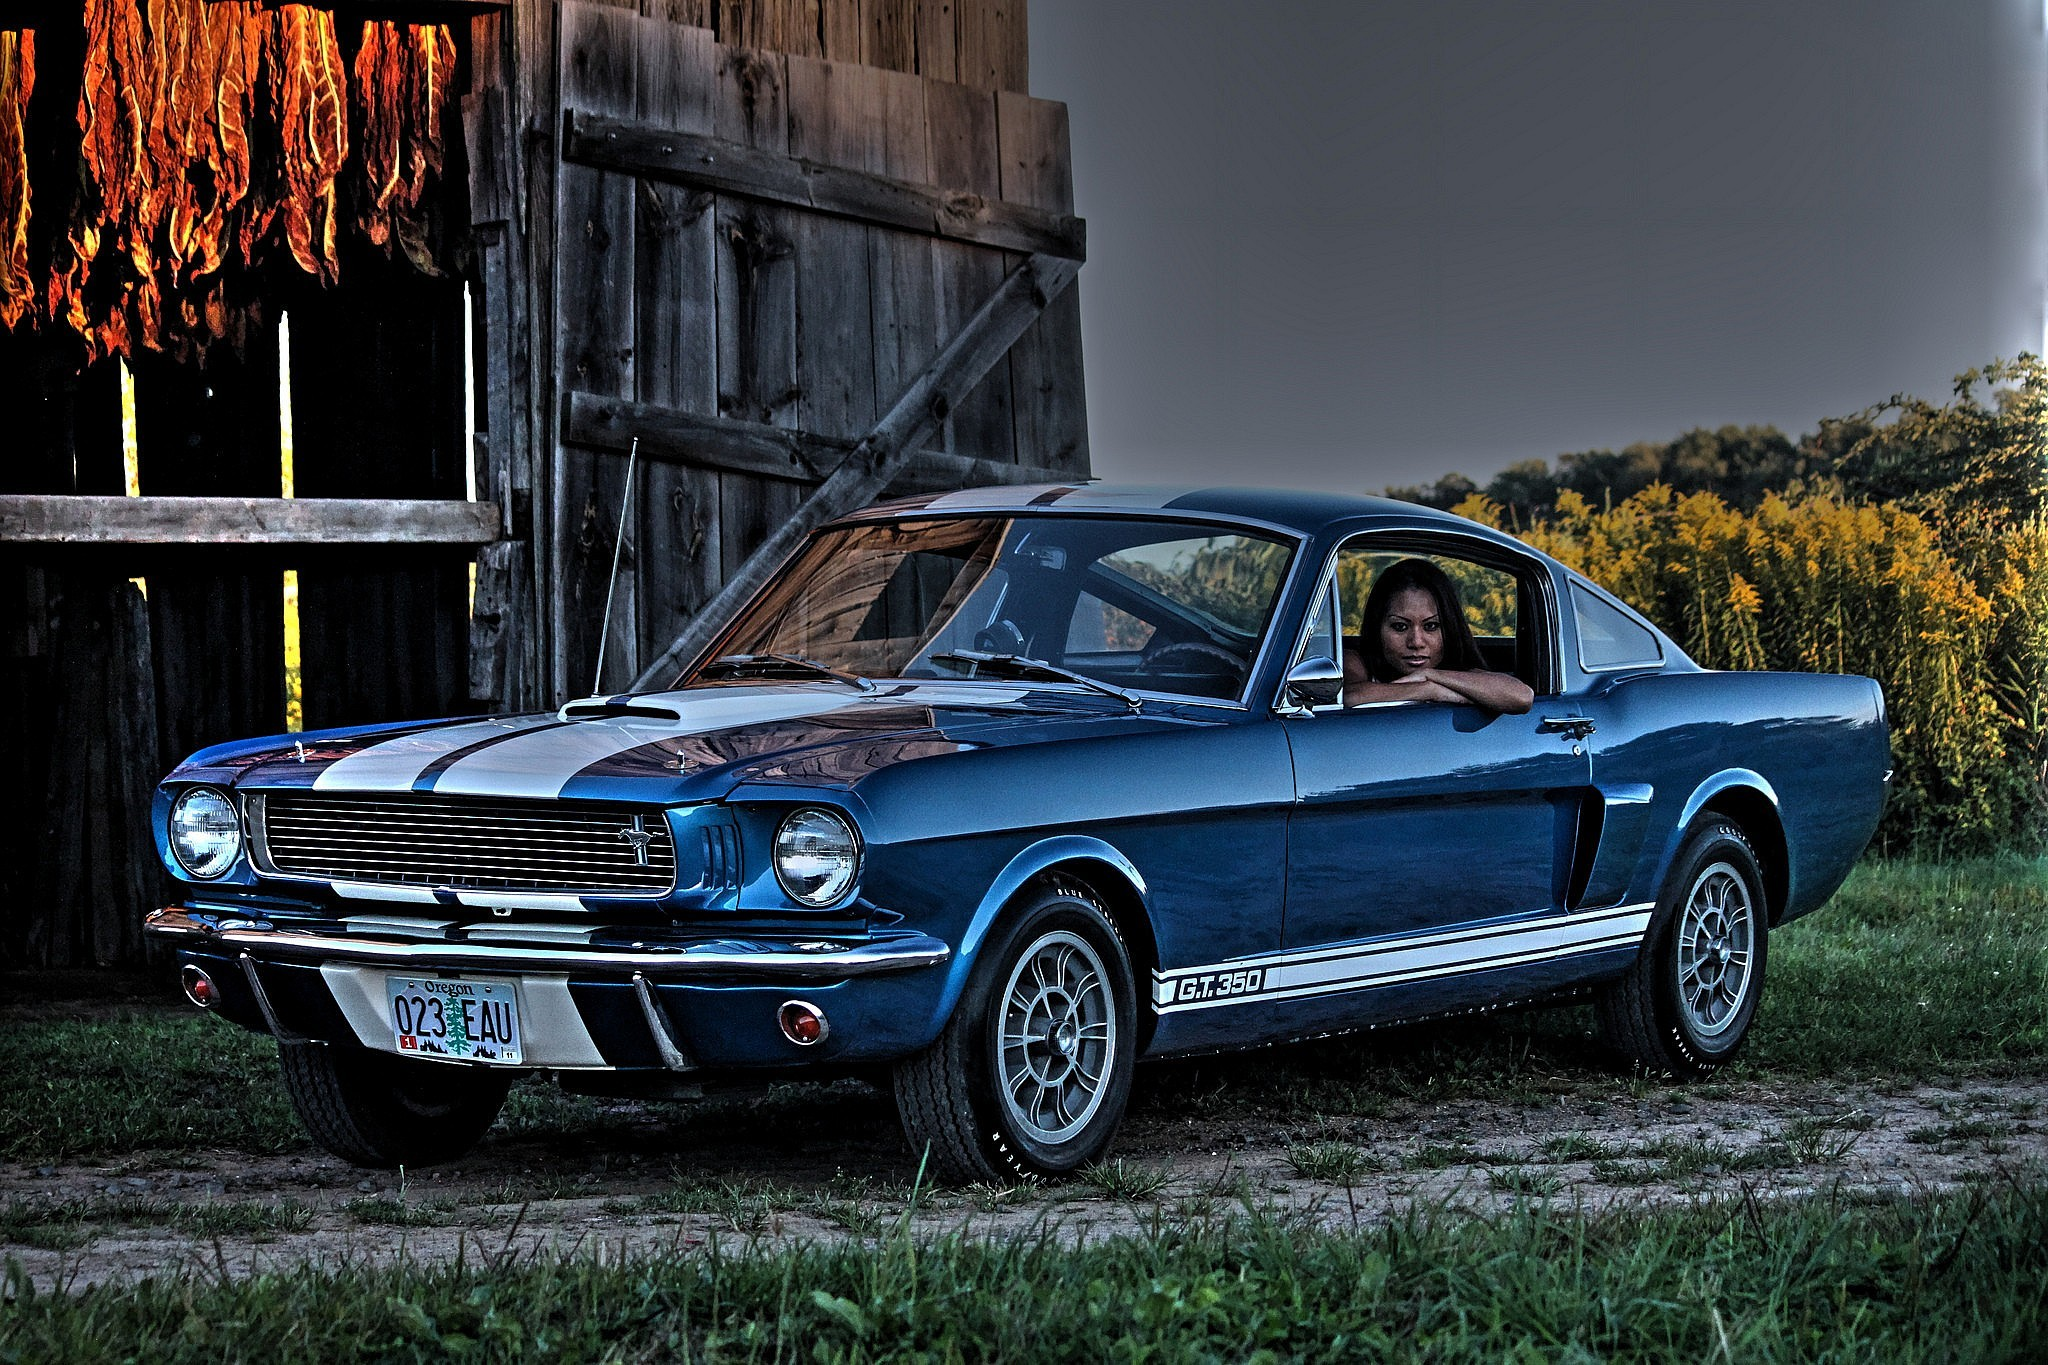 Shelby mustang wallpaper 75 images - Mustang shelby ...